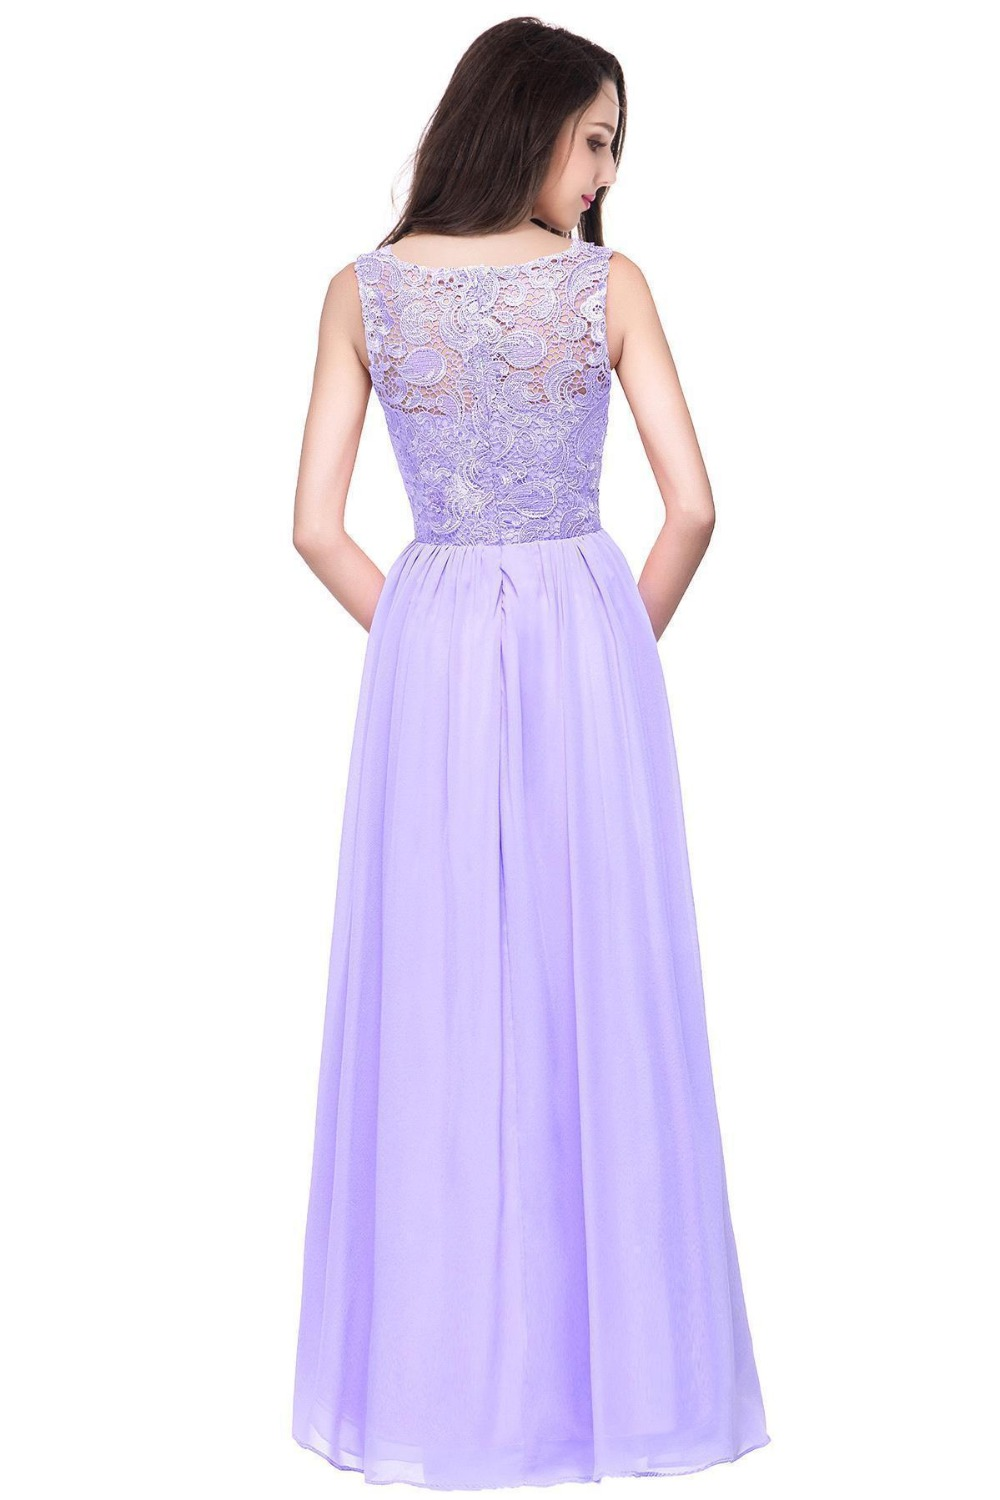 Aliexpress buy misshow 10 colors robes de demoiselle d aliexpress buy misshow 10 colors robes de demoiselle dhonneur a line long lilac bridesmaid dresses 2017 chiffon lace prom formal party gown from ombrellifo Image collections